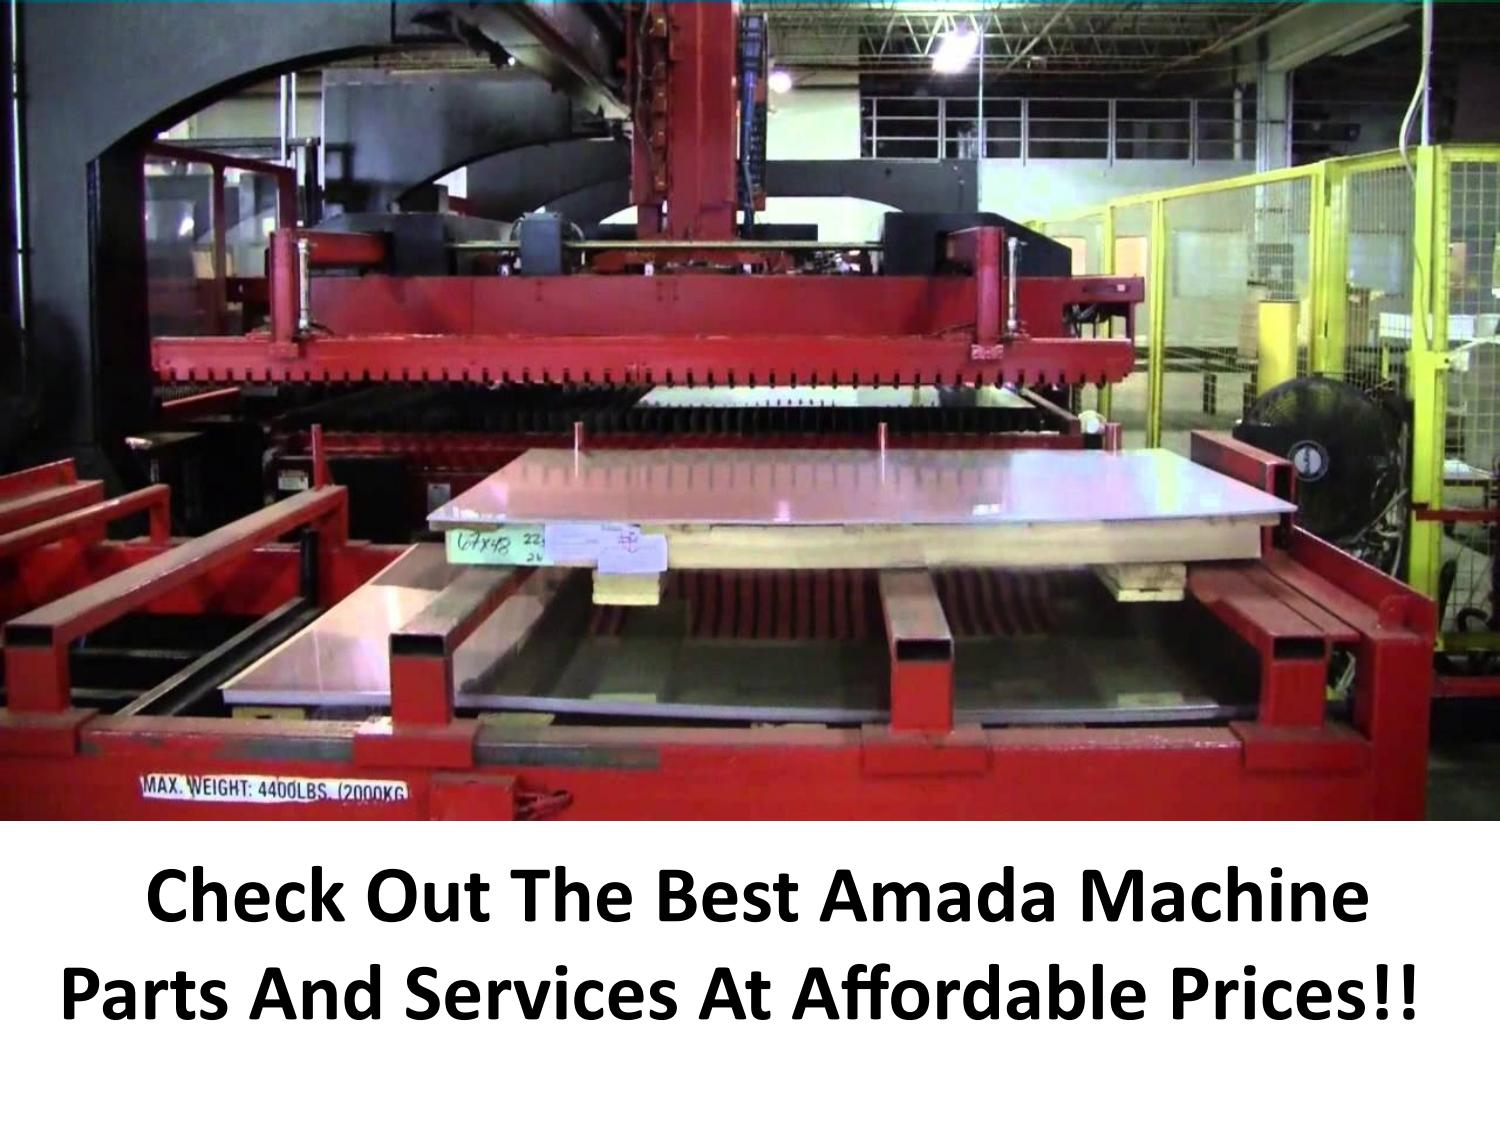 Amada Machine Parts And Services by Laser Experts - issuu